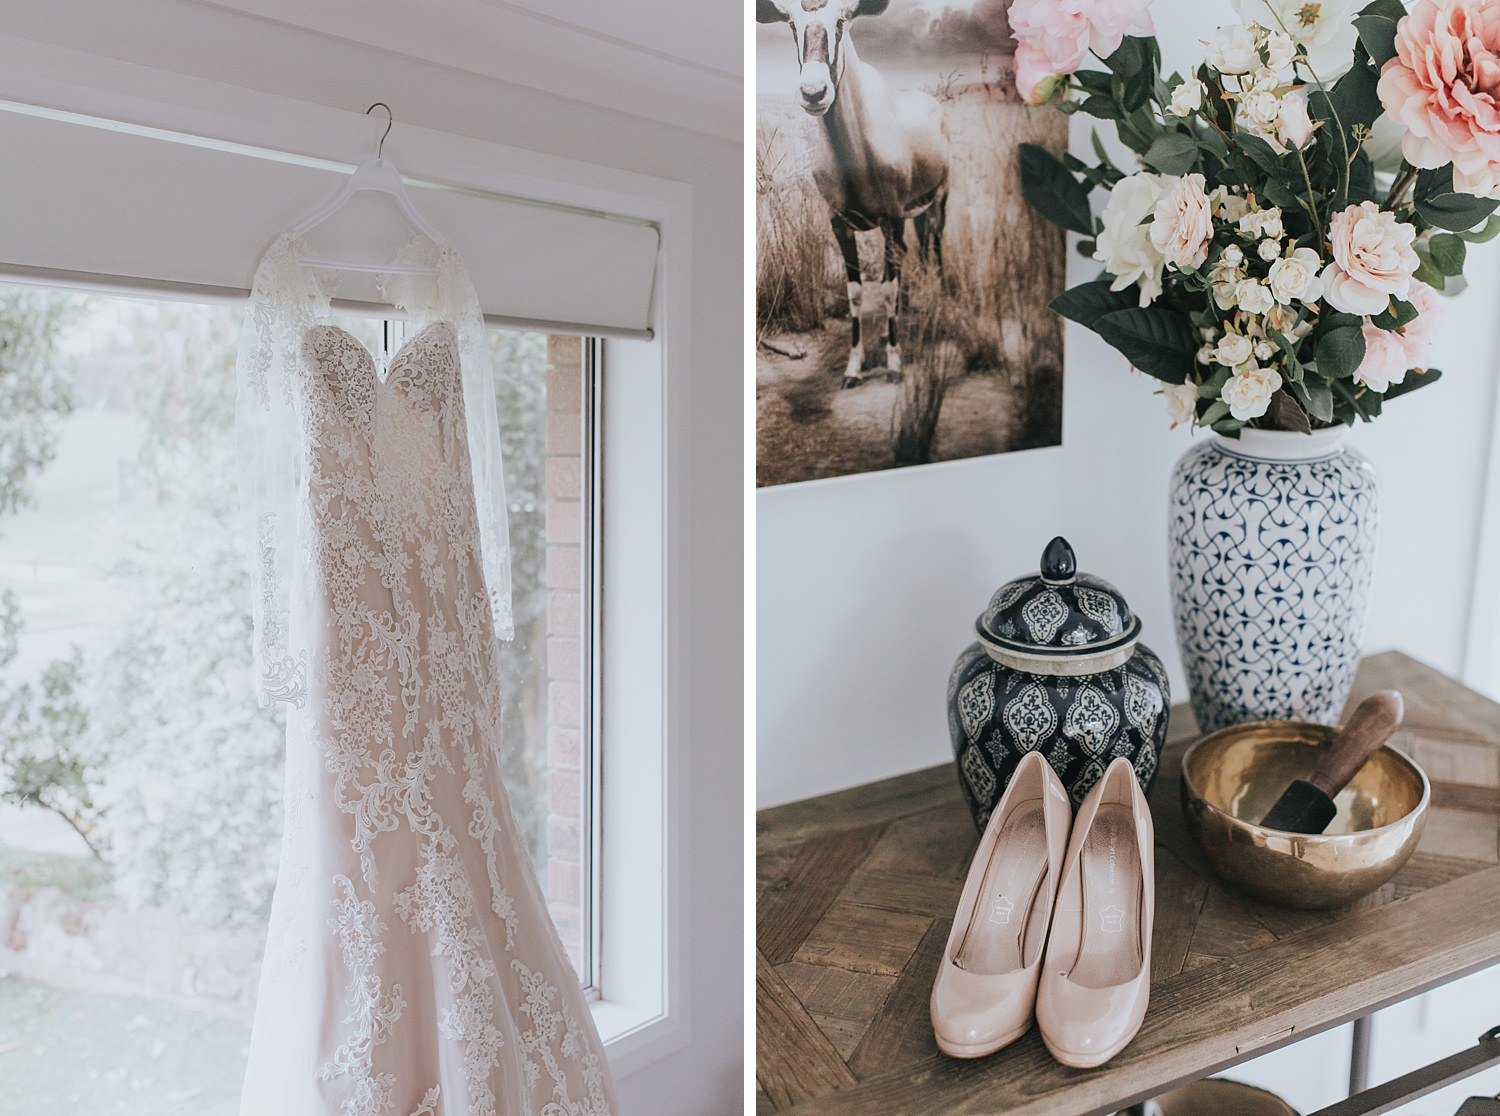 fairground follies wedding gown and shoes